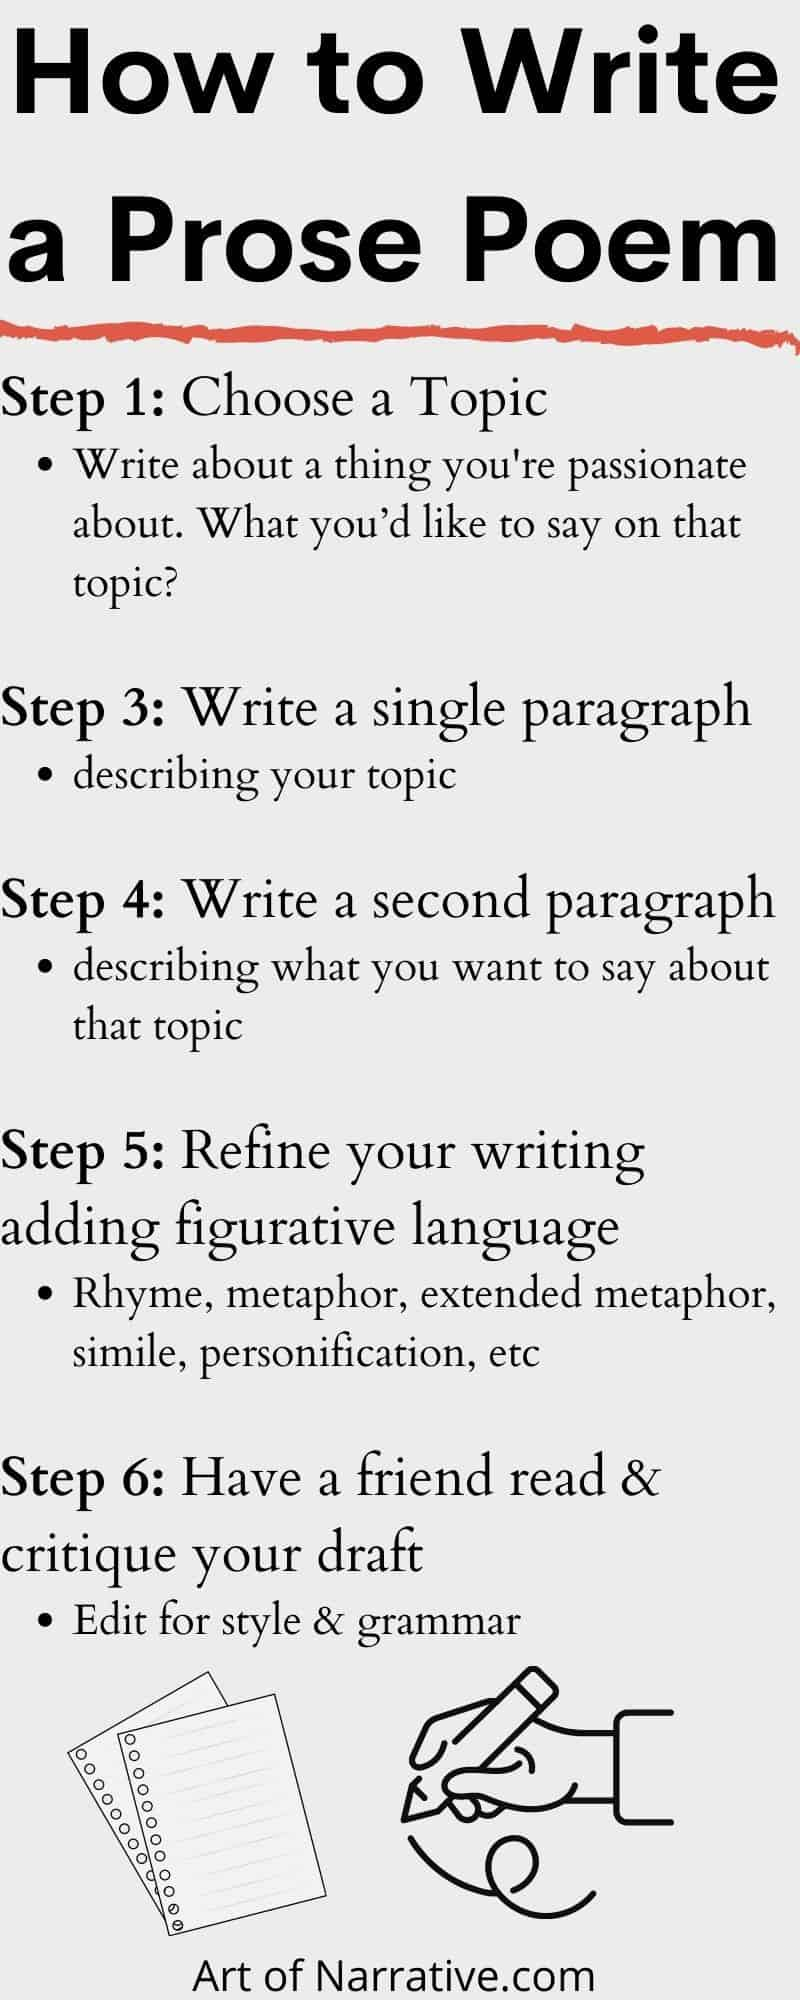 How to Write Prose Poetry: a Six Step Guide - The Art of Narrative